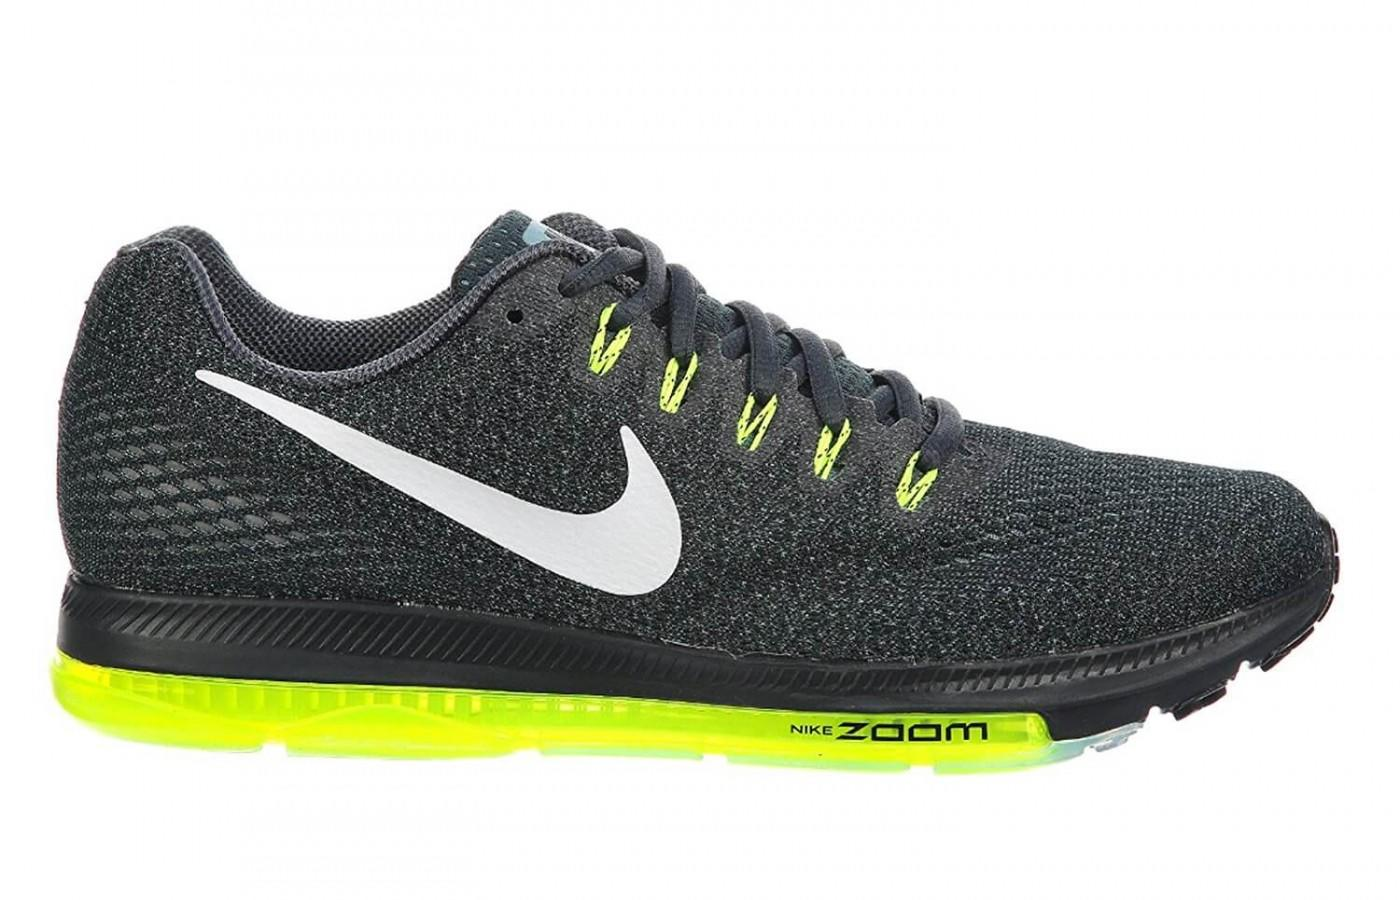 Nike combines style and structure for a great overall shoe.